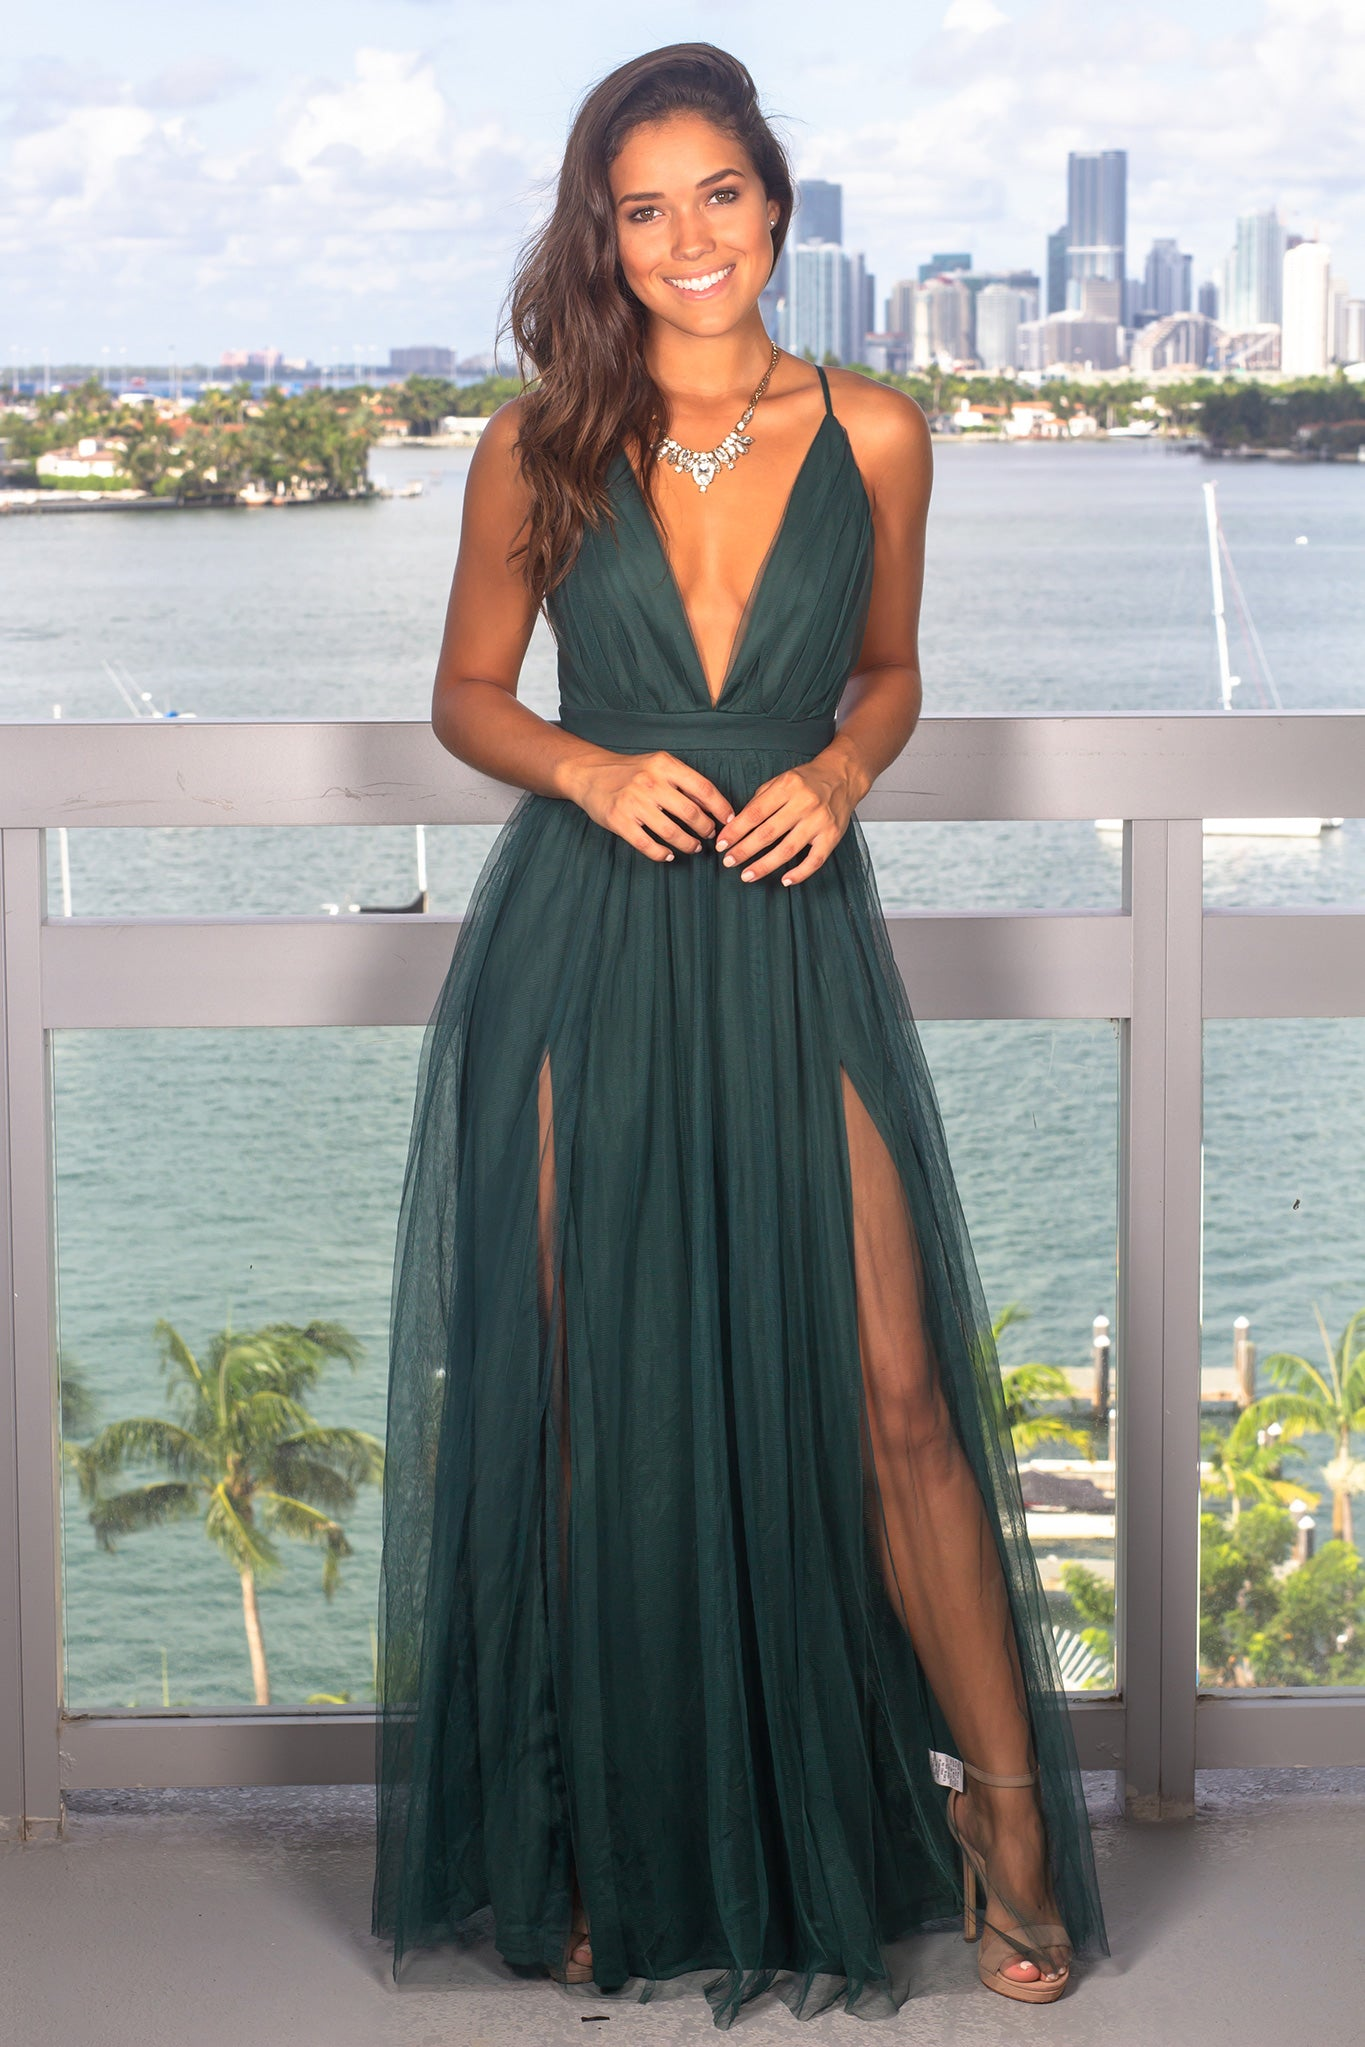 Hunter Green Tulle Maxi Dress with Criss Cross Back